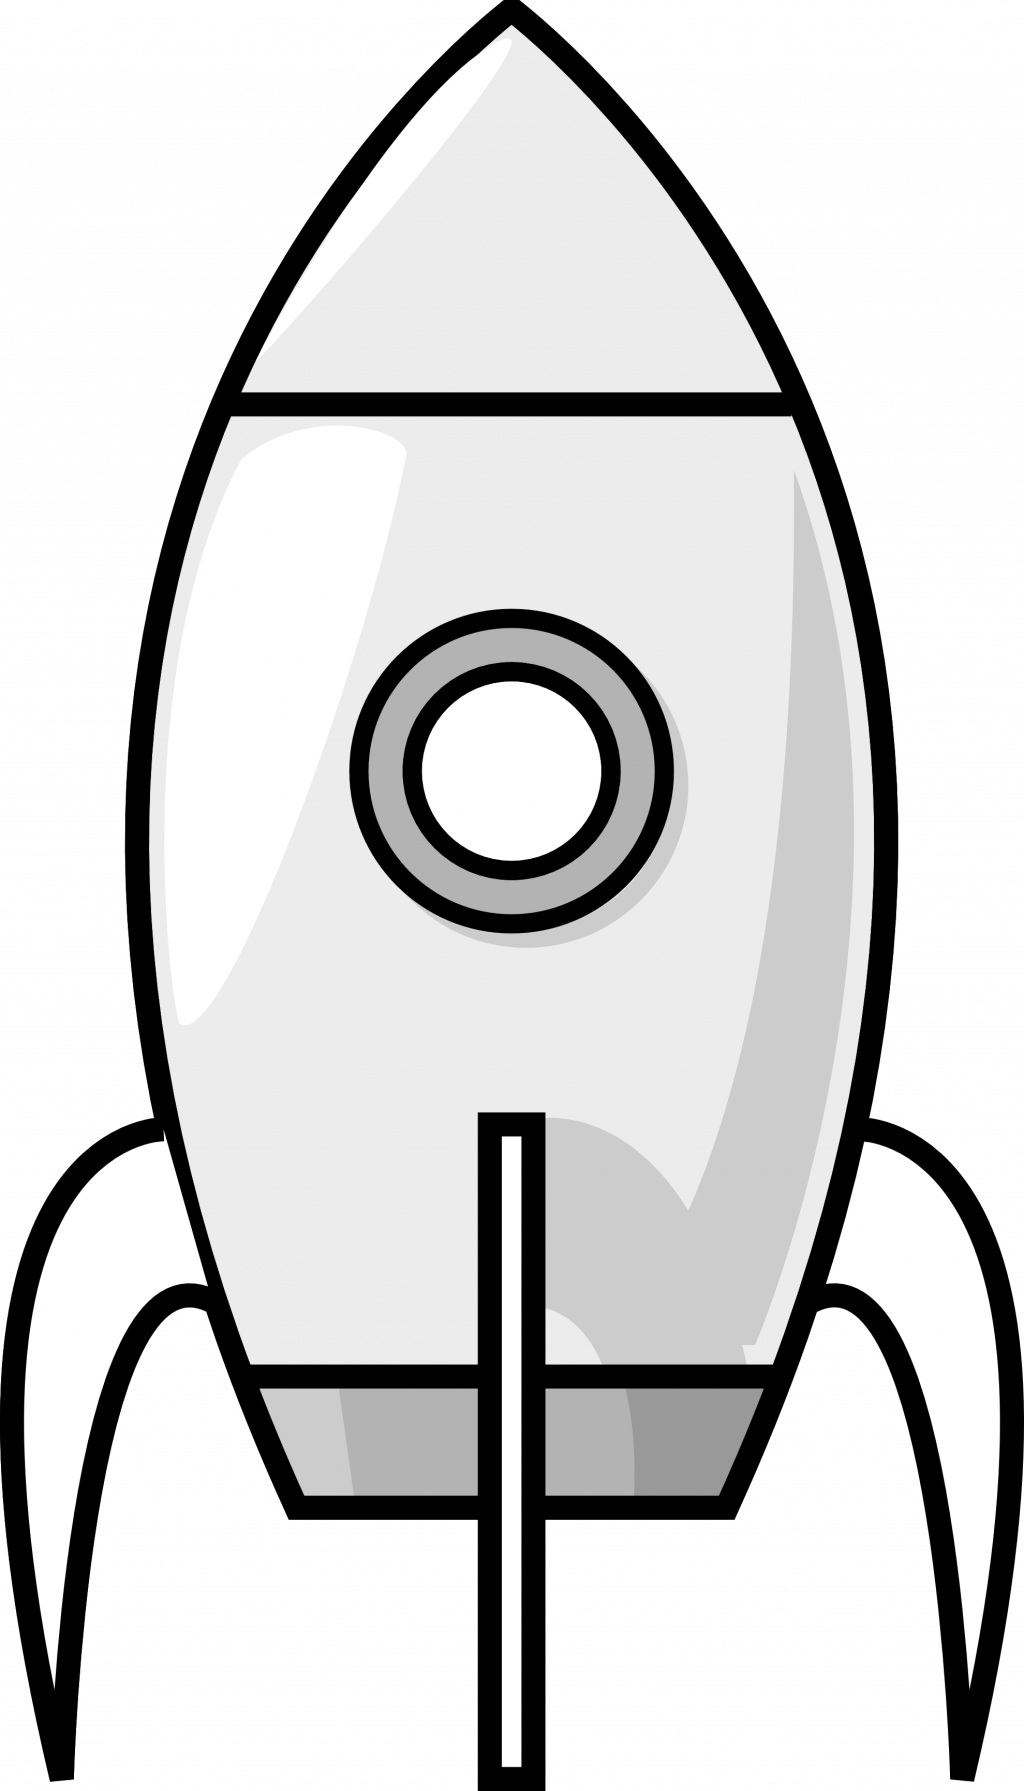 Spaceship clipart control panel. Toy black and white